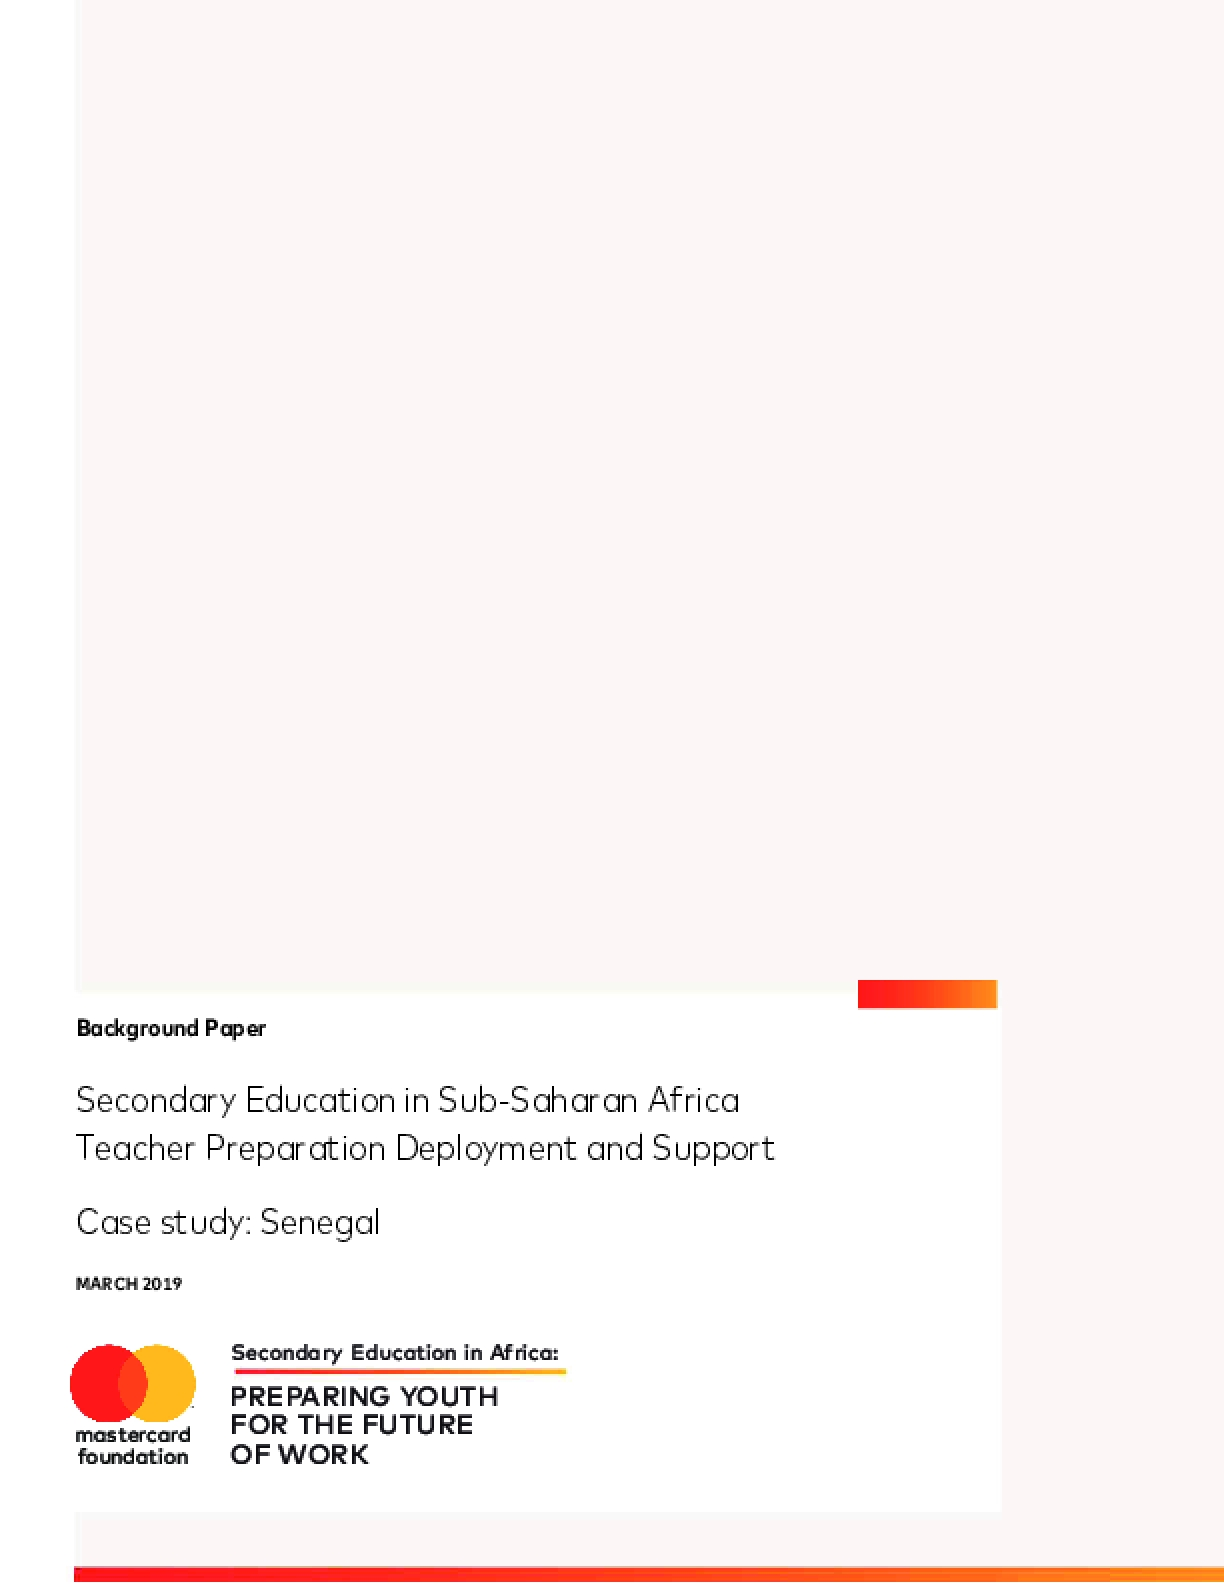 Secondary Education in Sub-Saharan Africa Teacher Preparation Deployment and Support Case study: Senegal